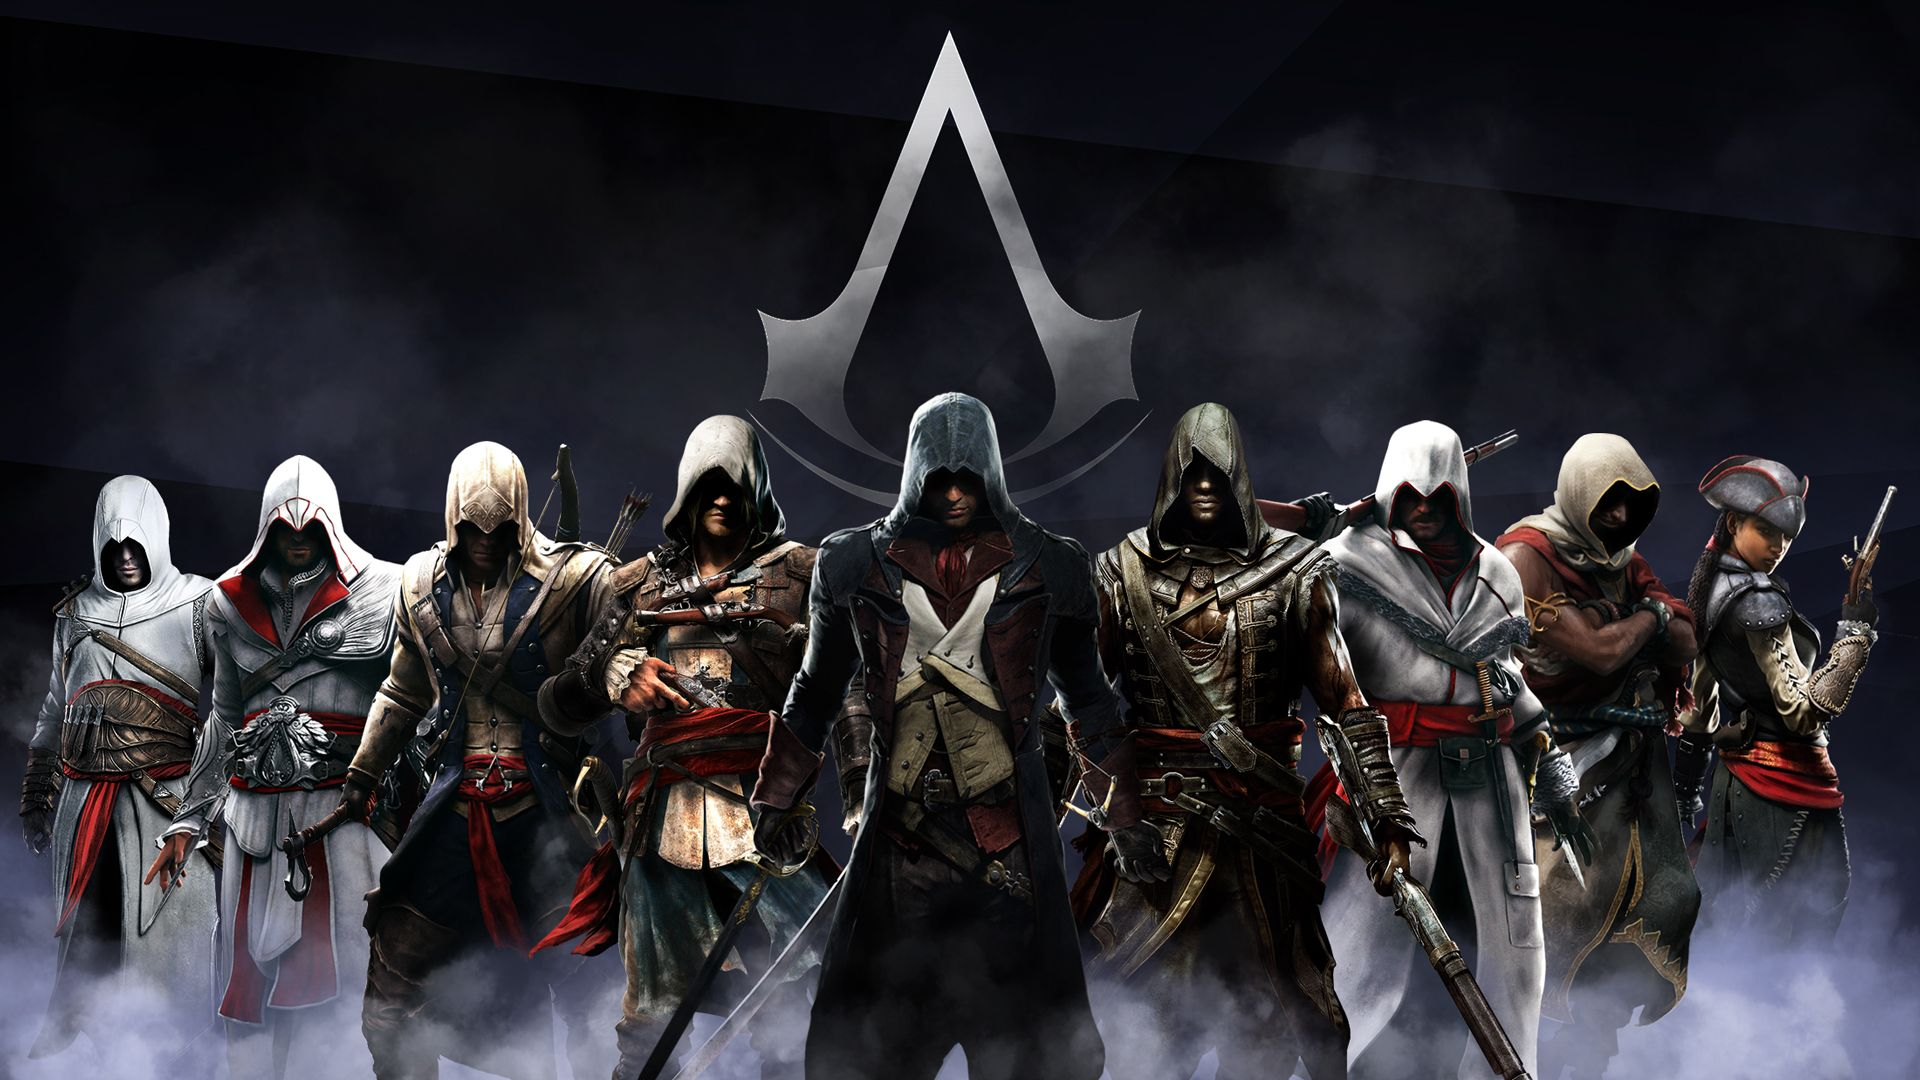 Assassins Creed Wallpaper Hd With Images Assassin S Creed